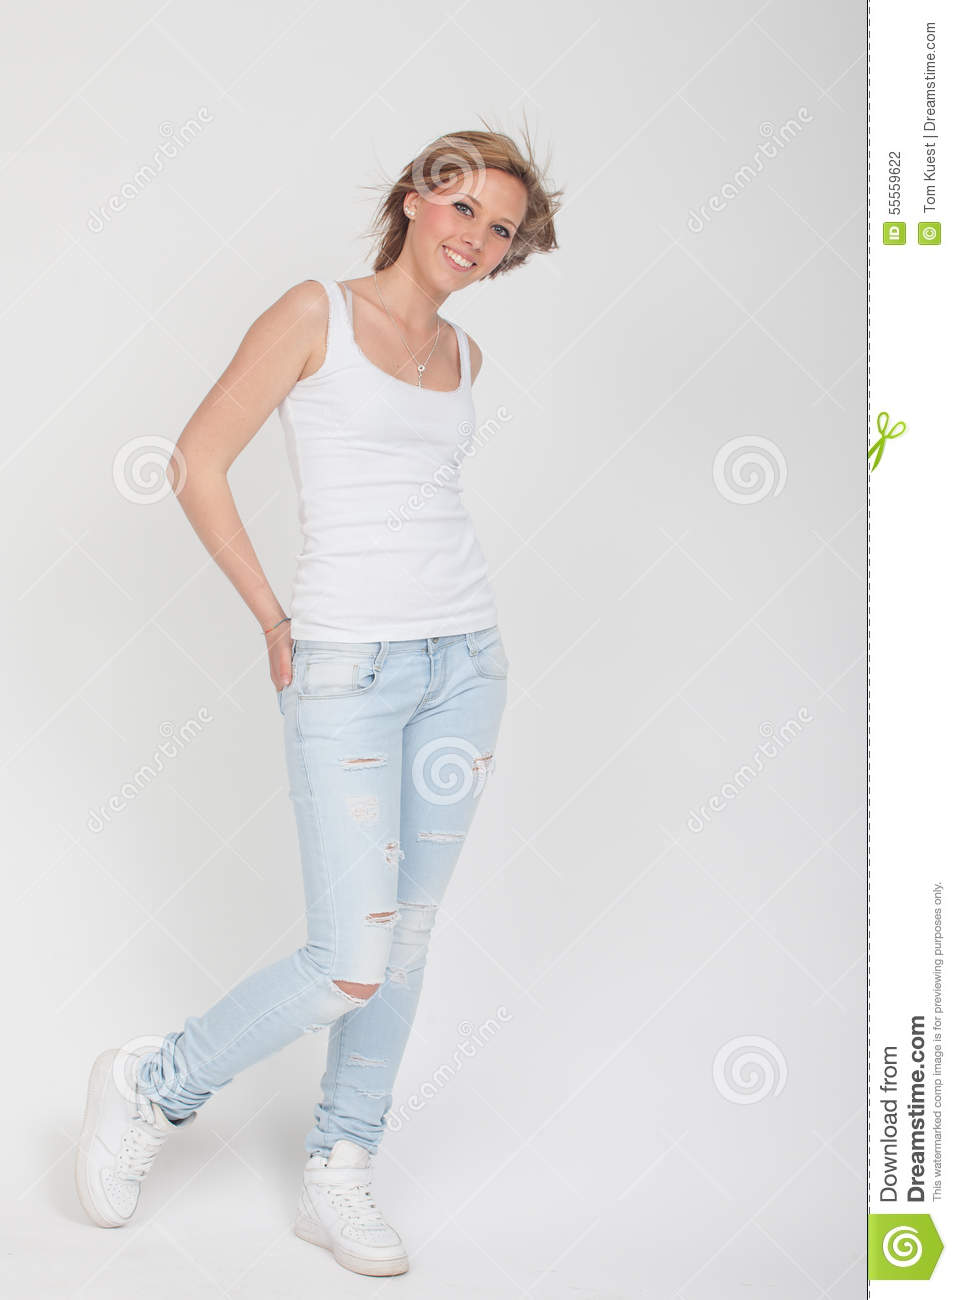 Teenager Girl In Blue Jeans, White Shirt And White Sport Shoes P ...